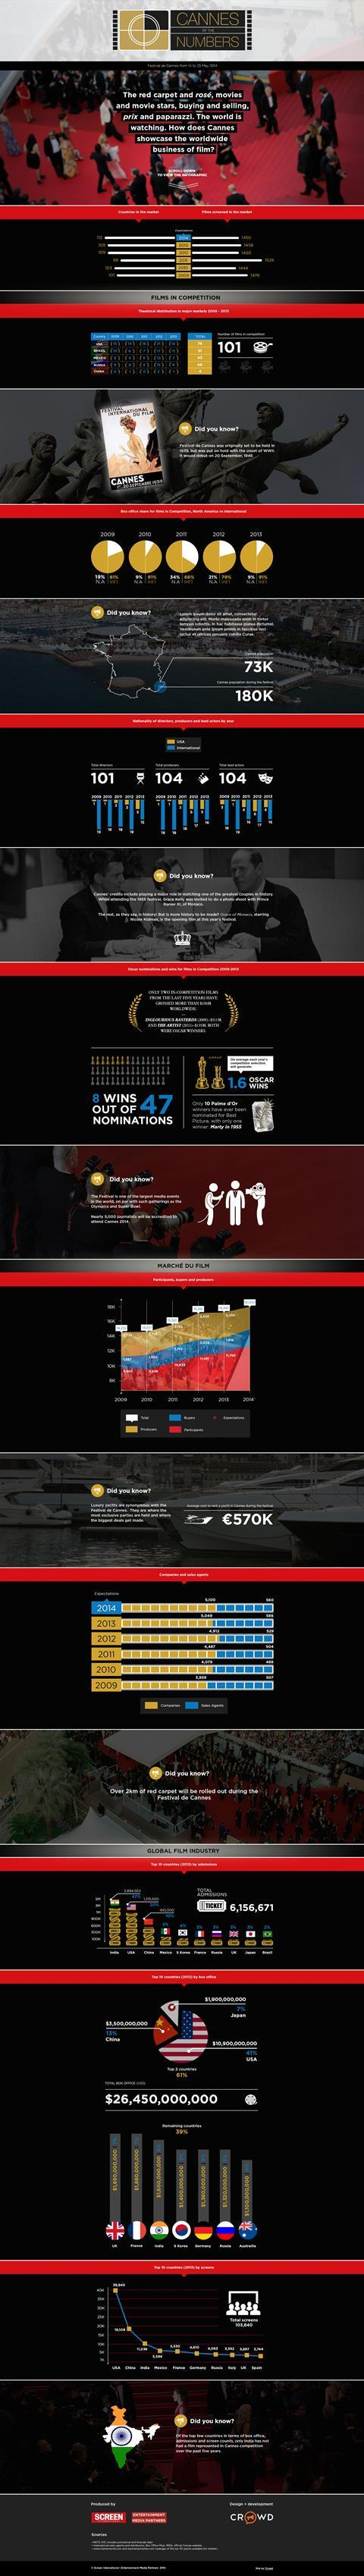 Cannes 2014: Infographic